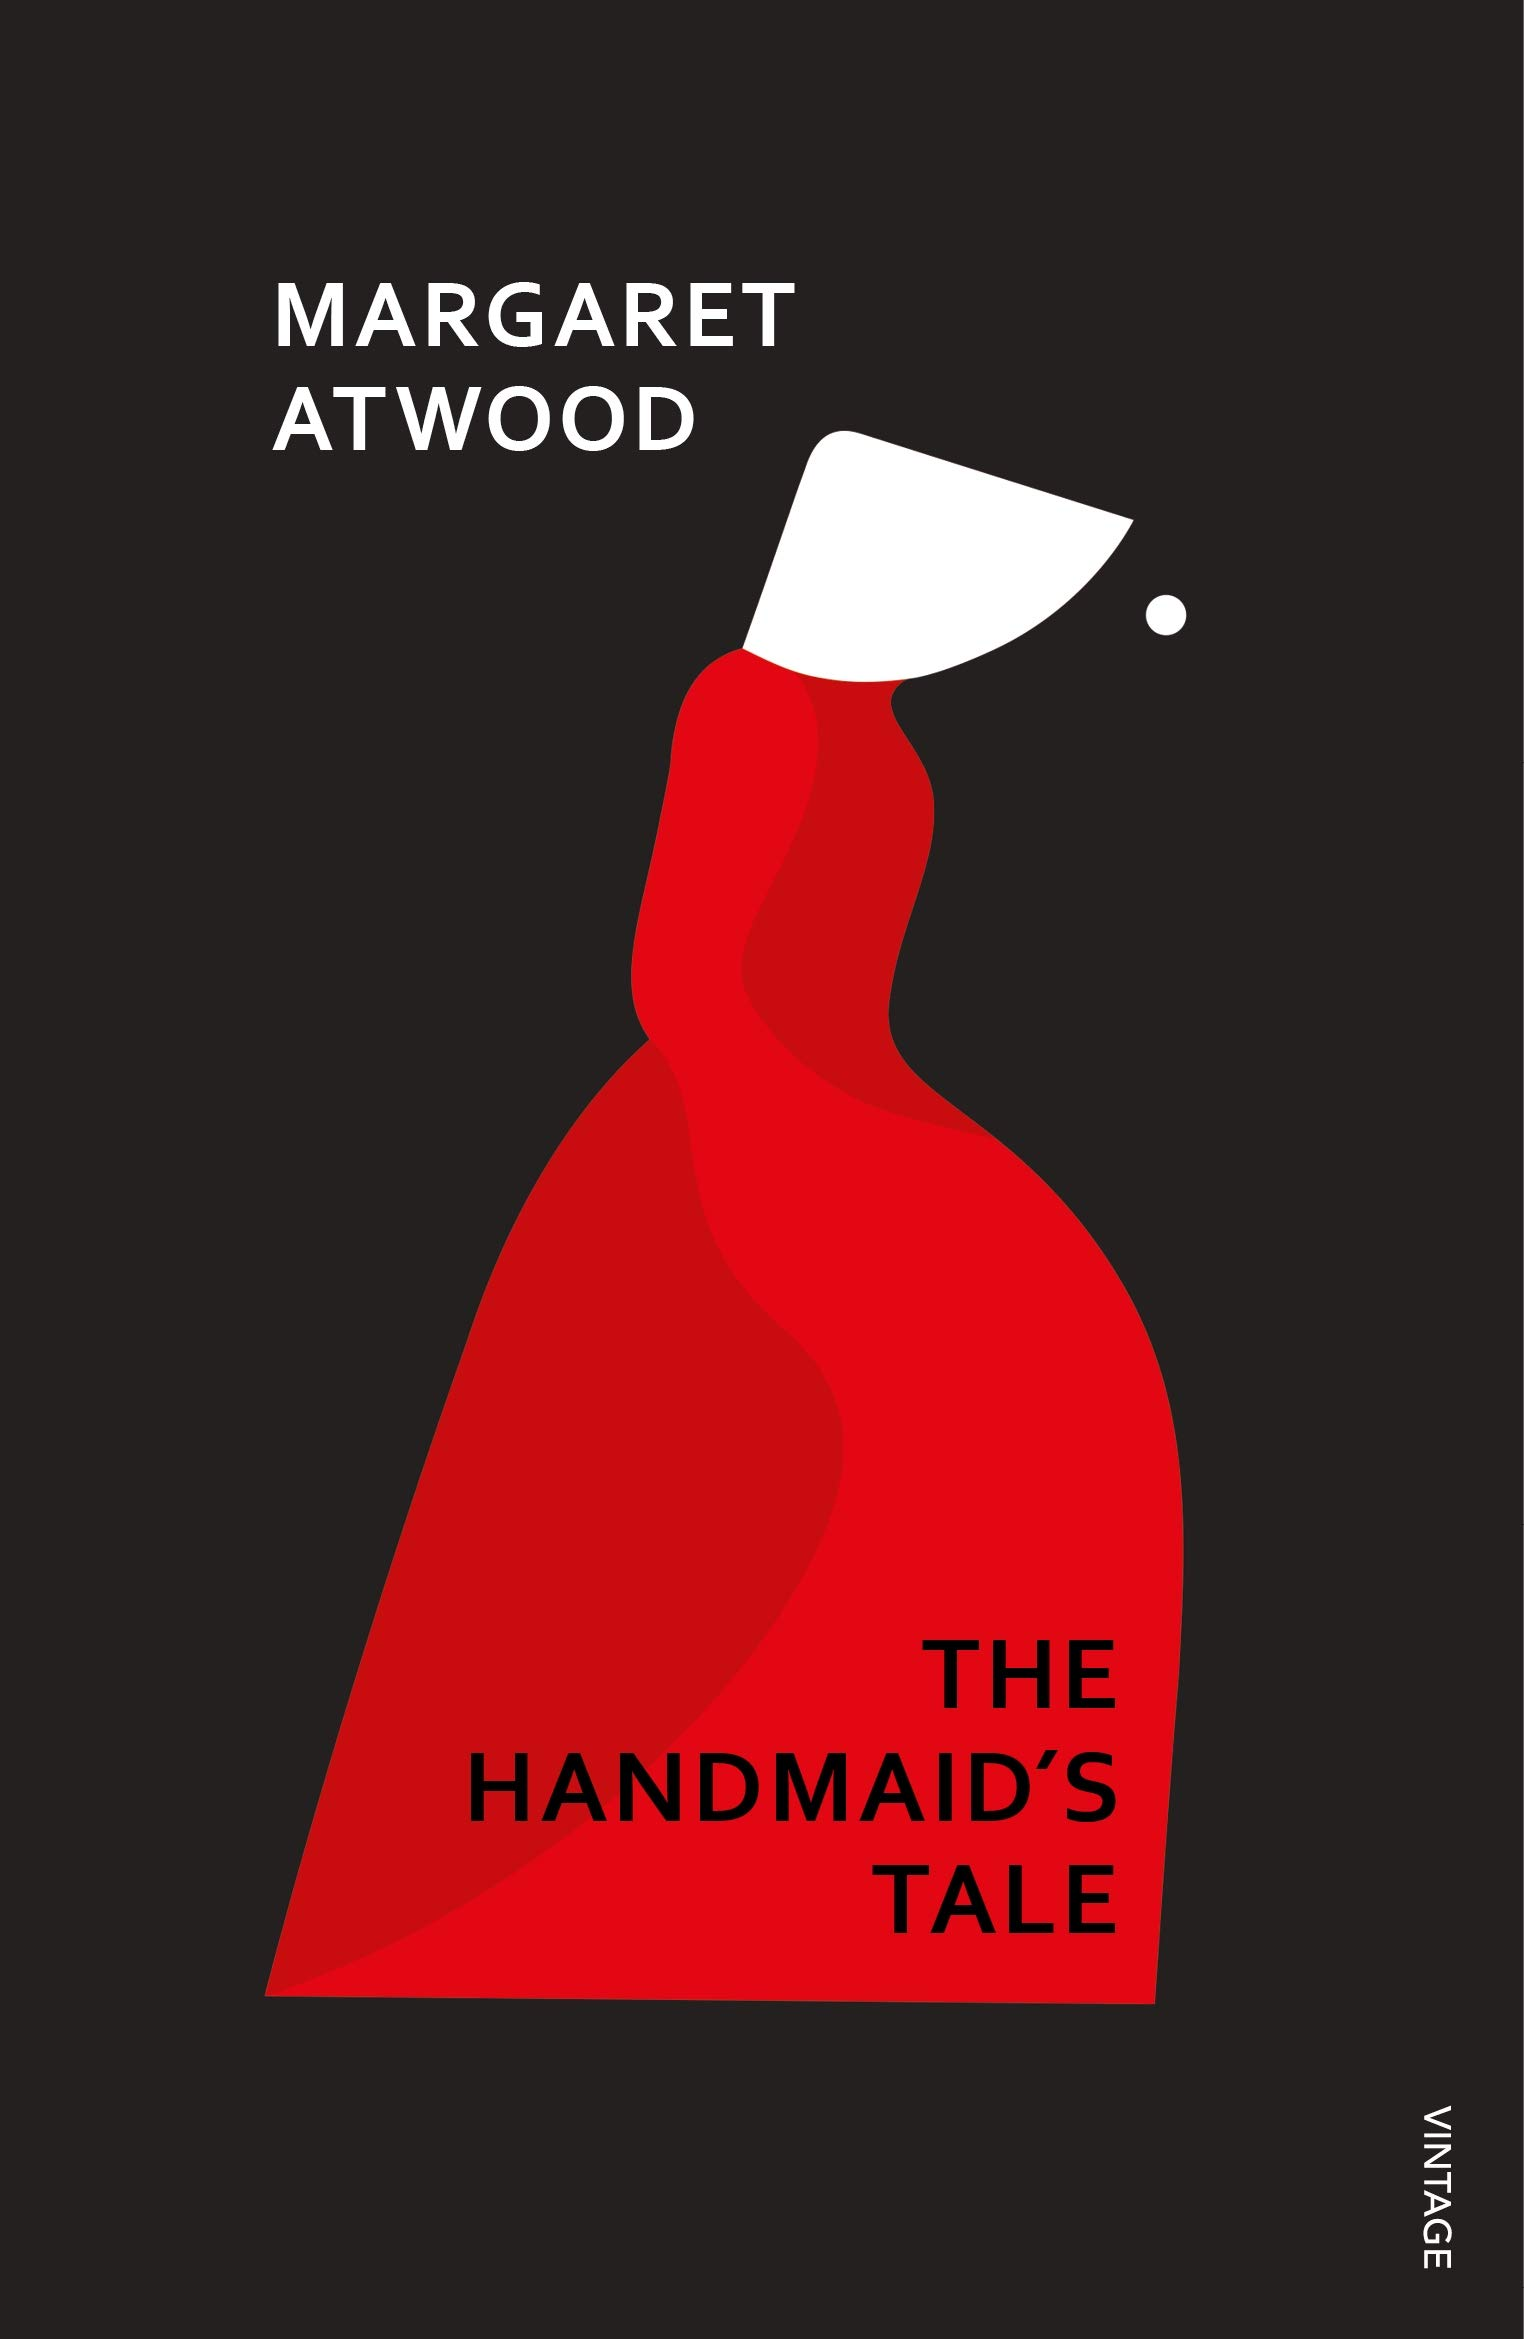 The Handmaid's Tale: Amazon.co.uk: Atwood, Margaret: 8601404194931: Books